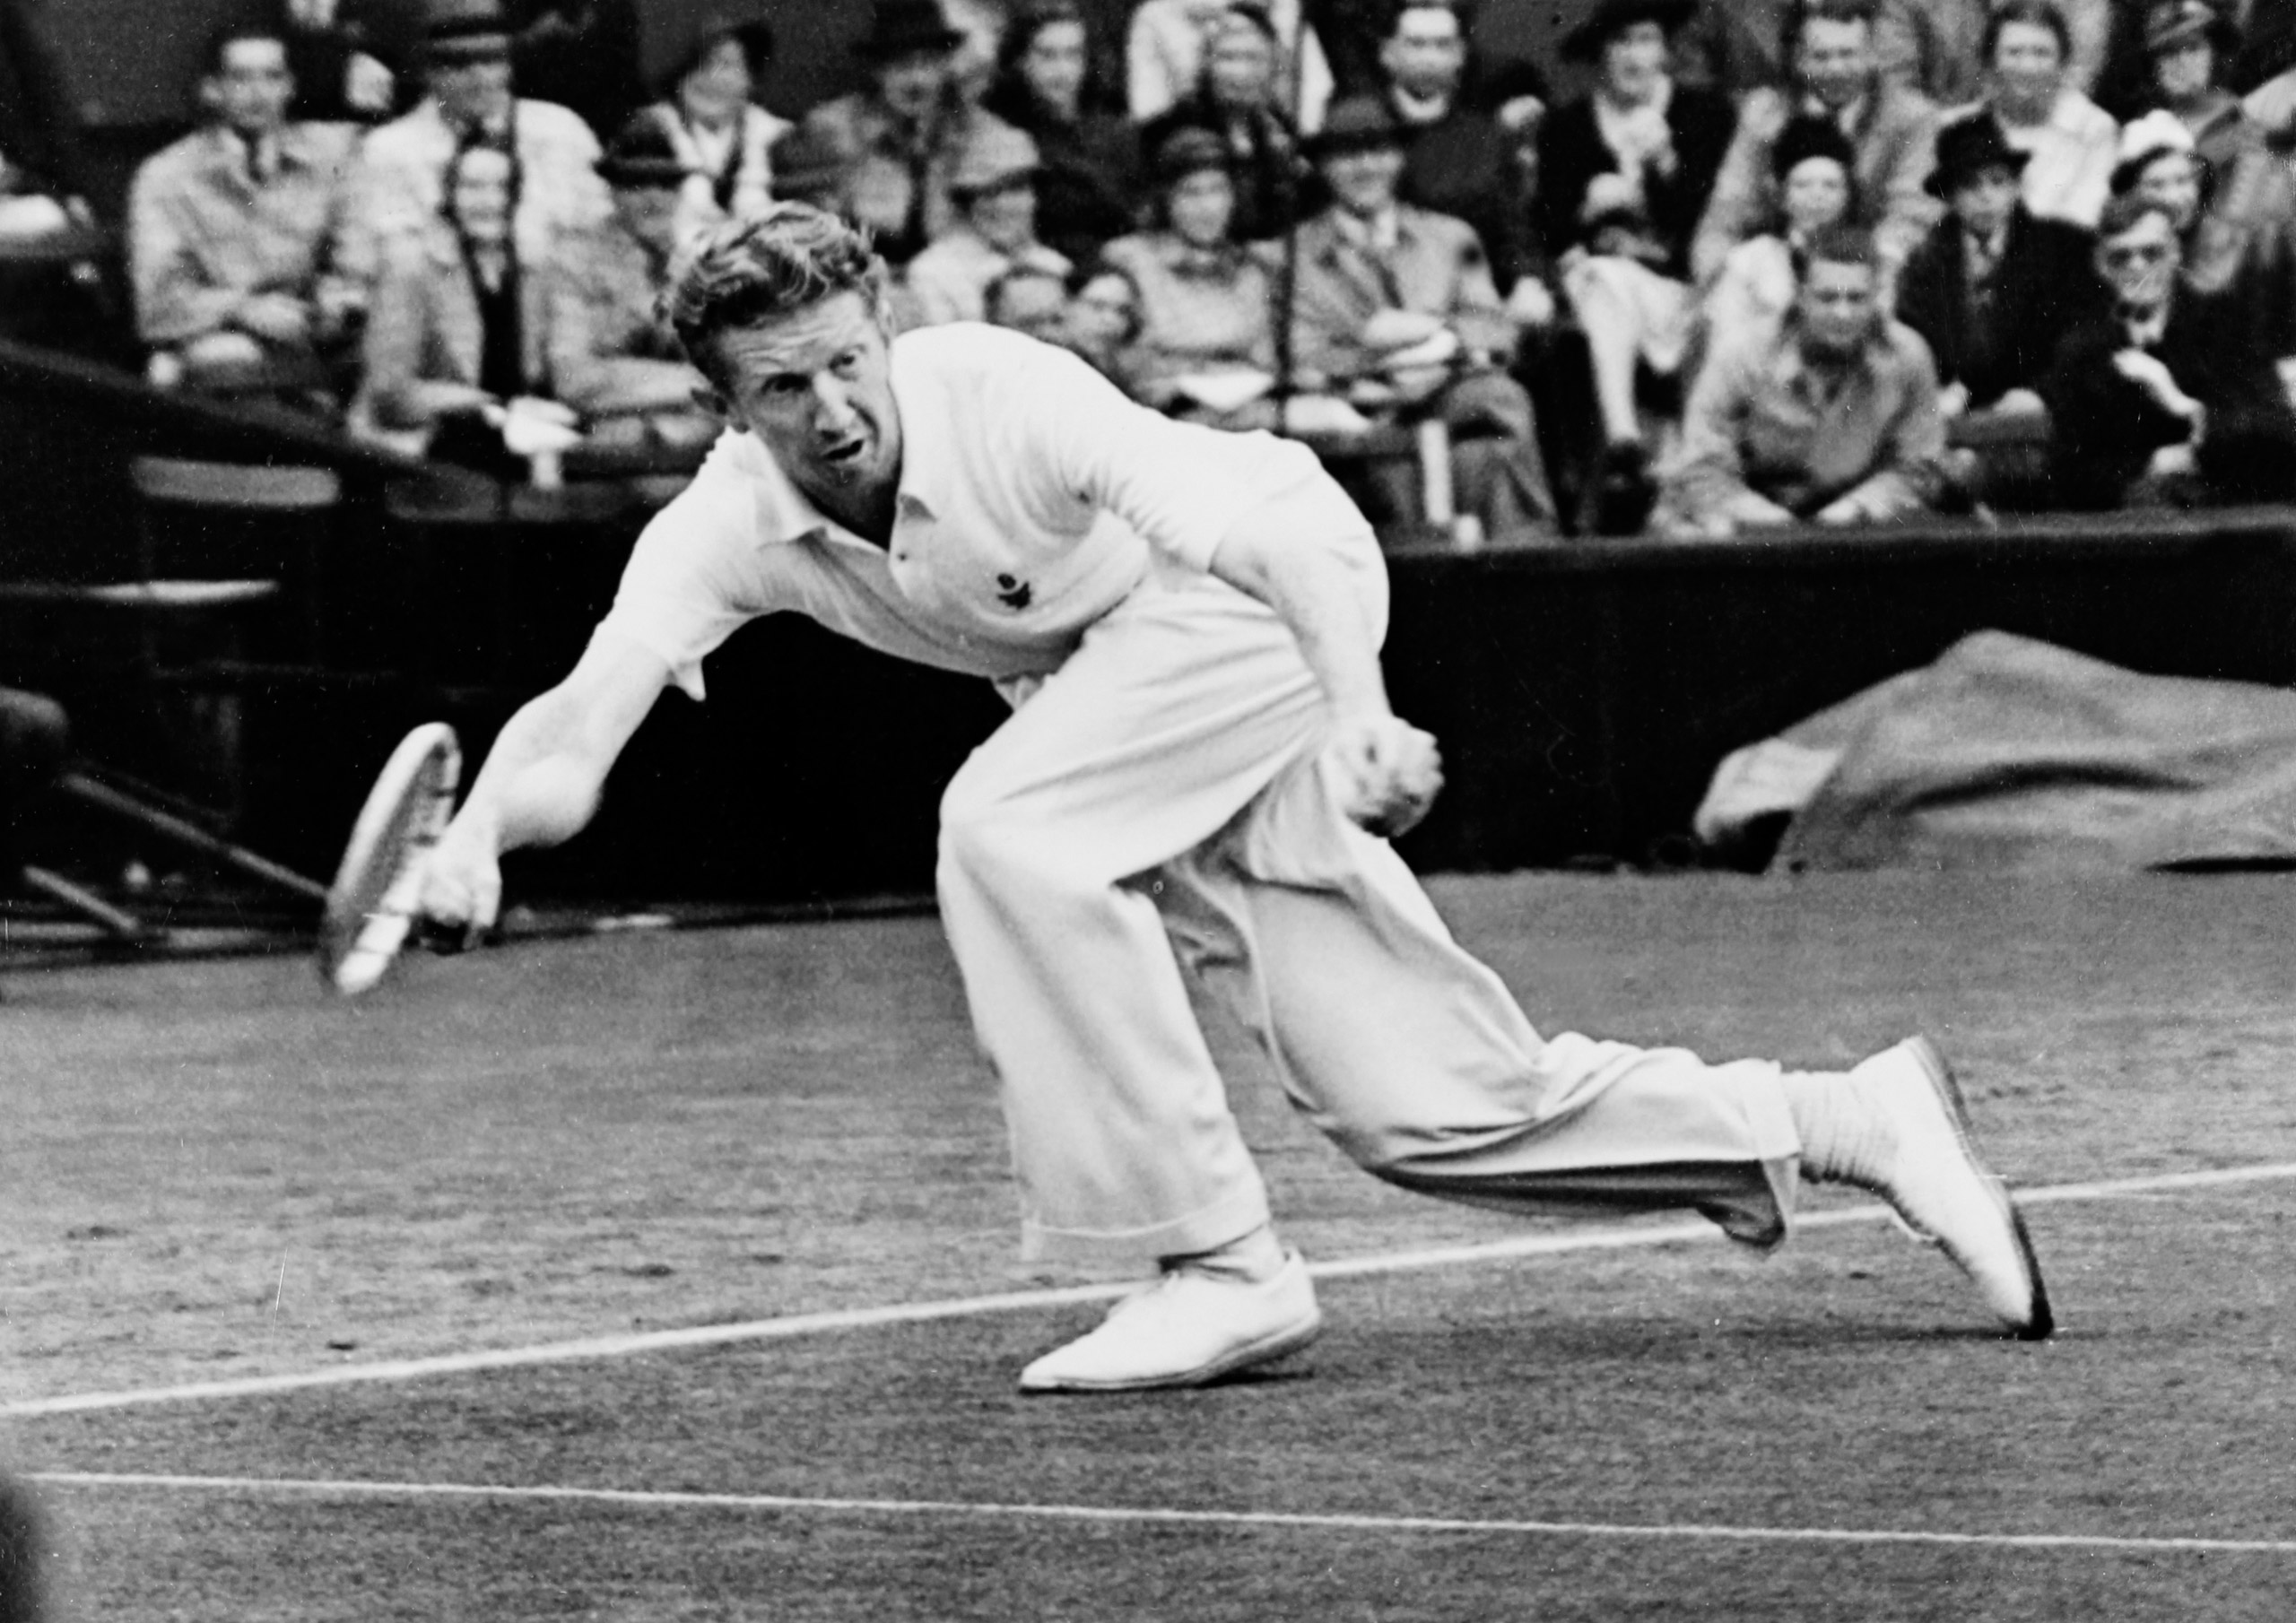 Don Budge in the first round at Wimbledon. June 28, 1938.